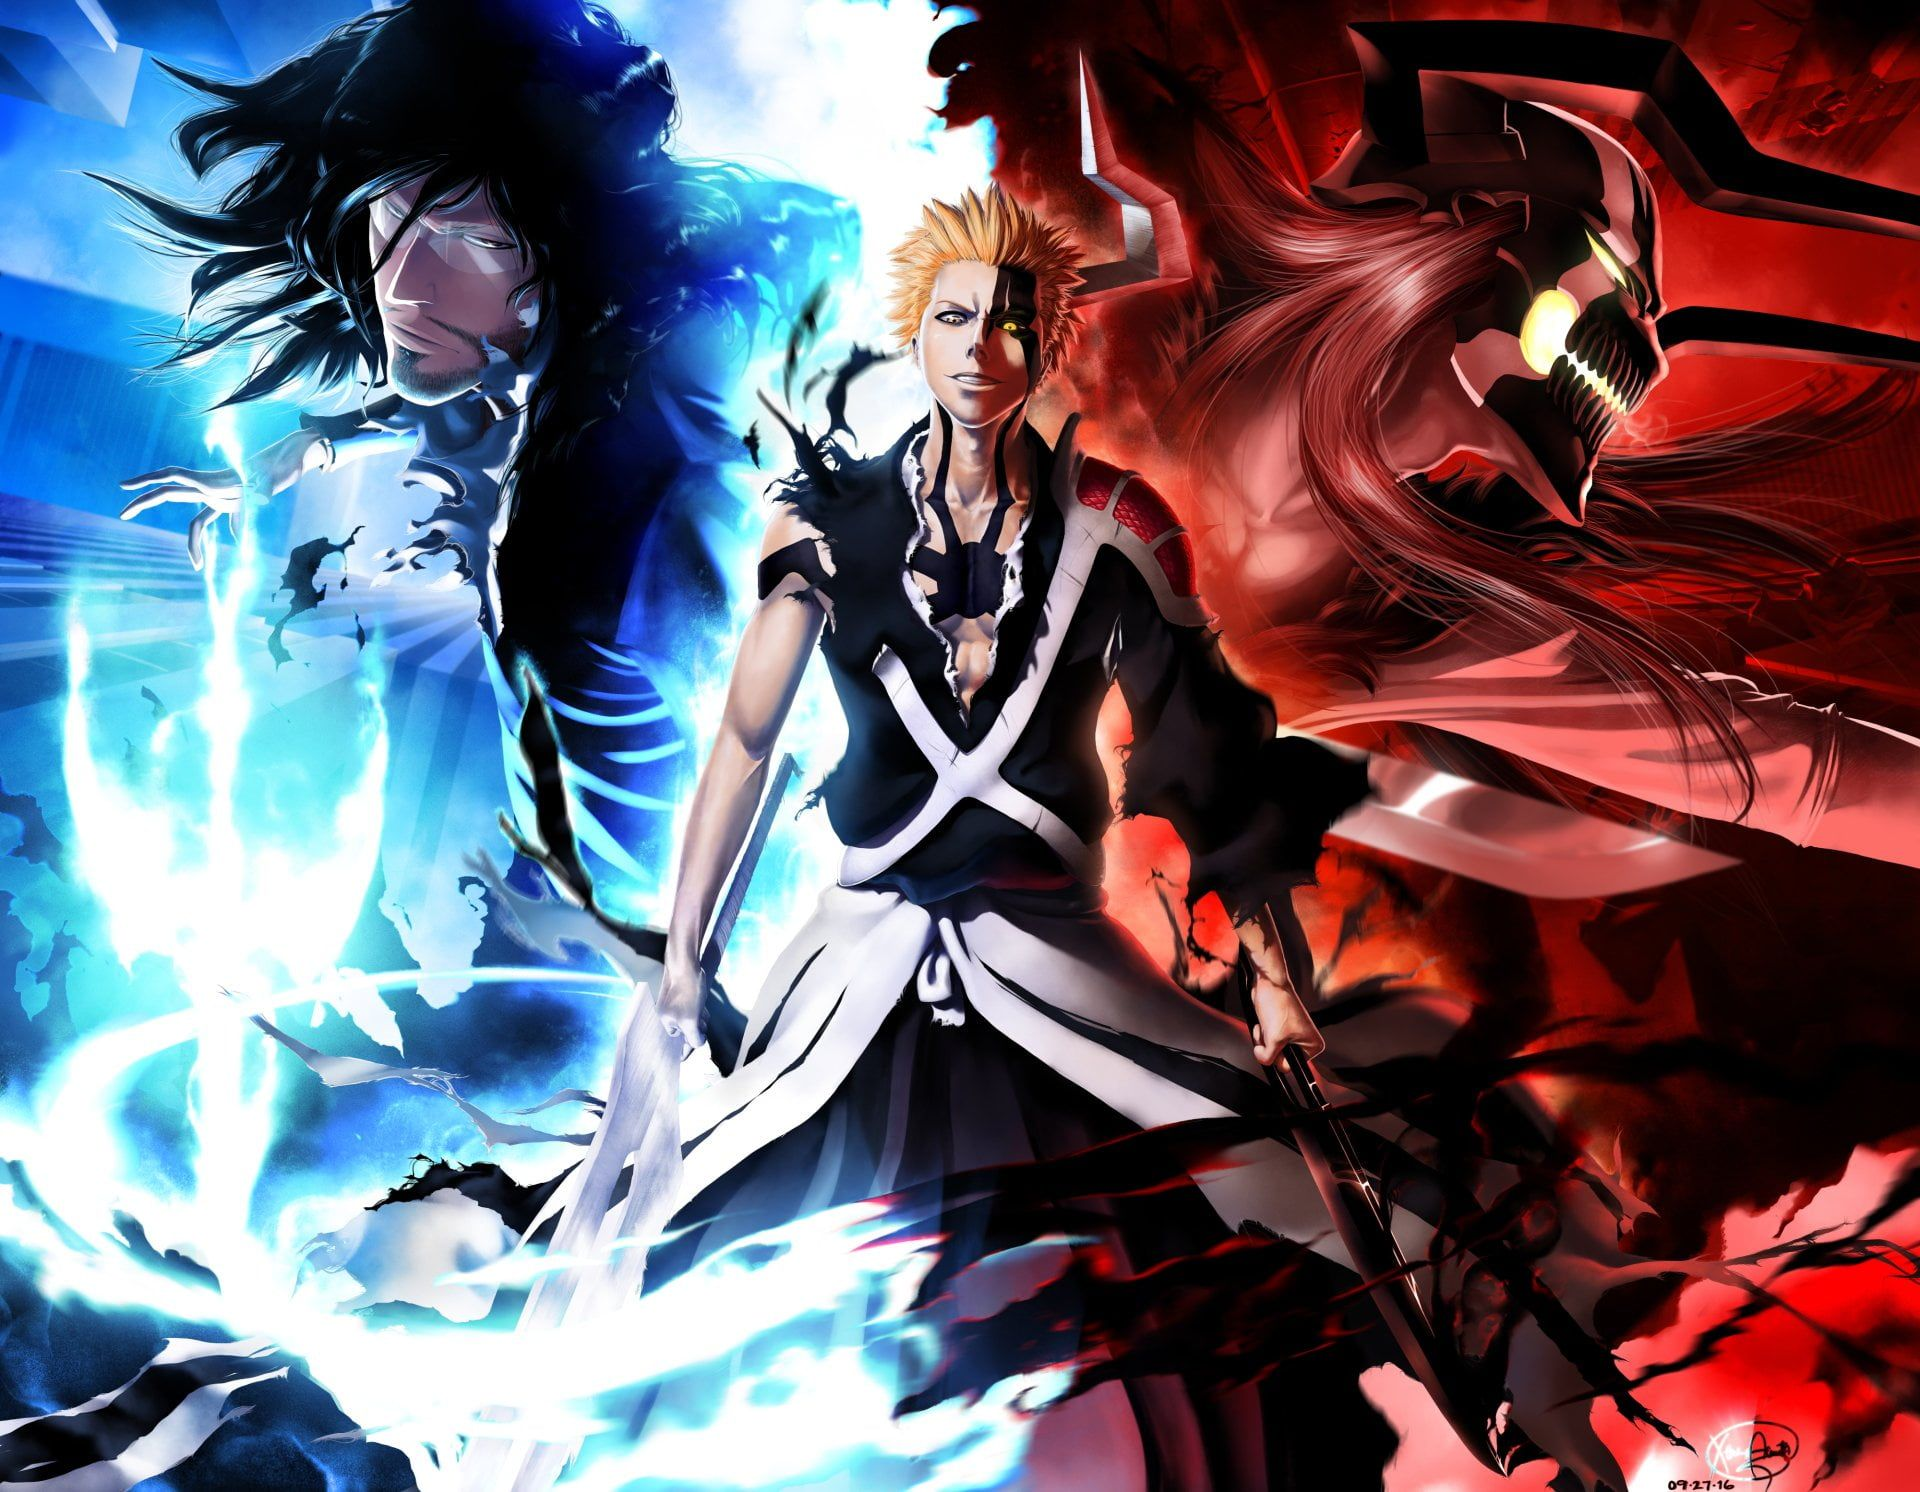 Bleach Anime Wallpaper Bleach Hollow Ichigo Ichigo Kurosaki Zangetsu Bleach 1080p Wallpaper Hdwallpaper Desktop Bleach Anime Bleach Art Anime Wallpaper